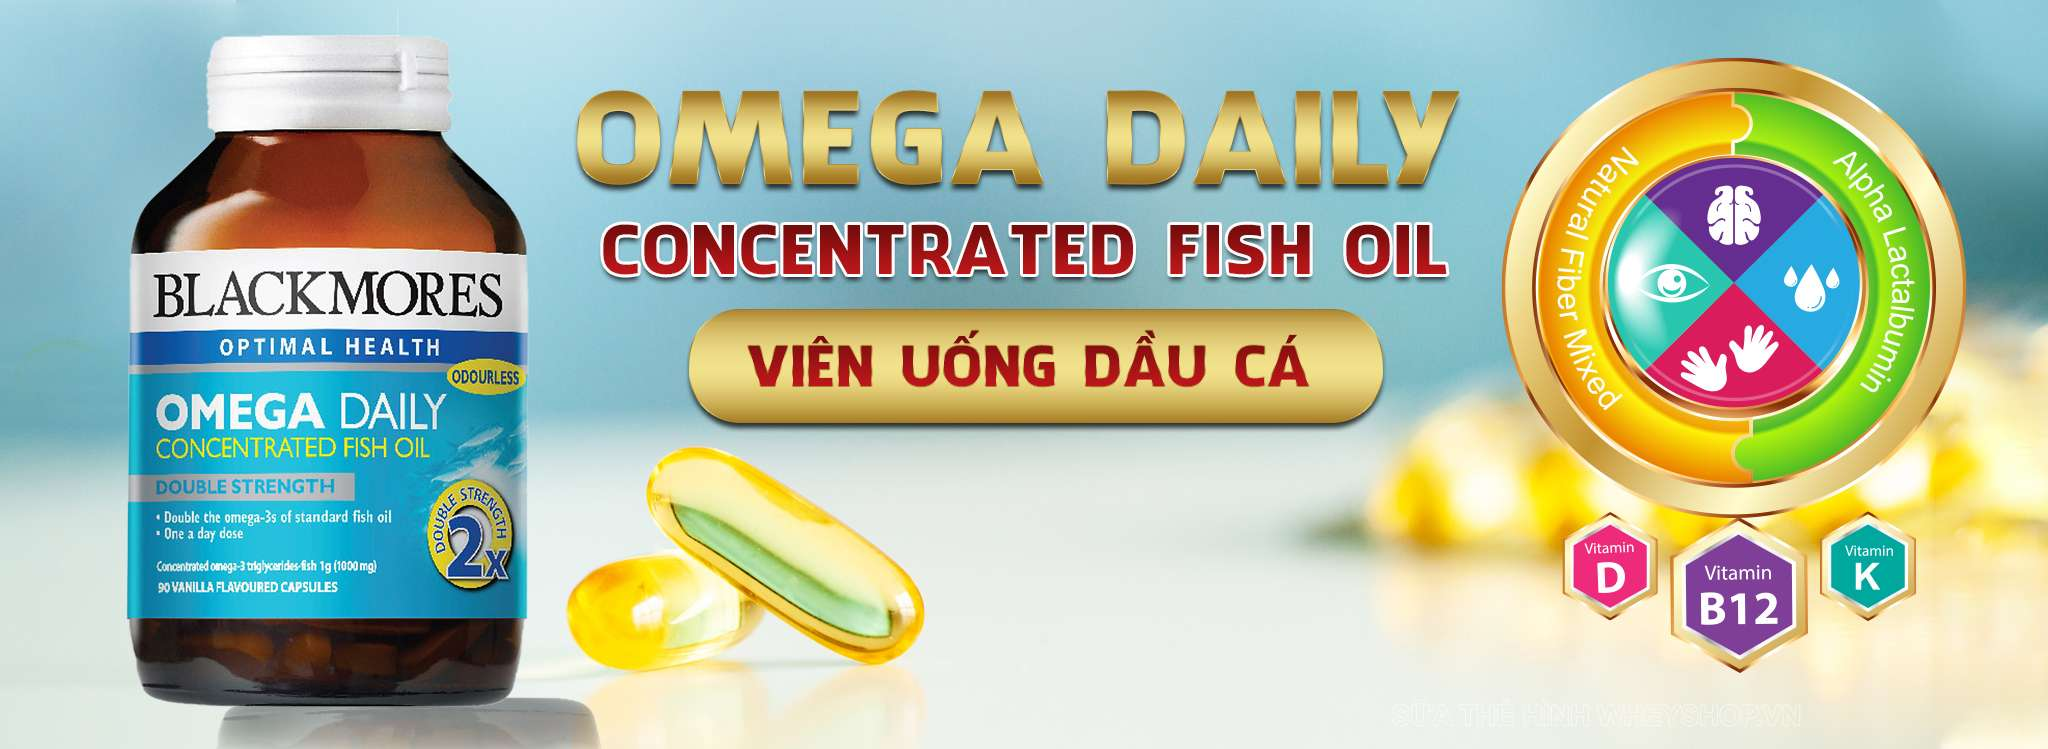 Blackmores Omega-3 Daily Concentrated Fish Oil gai re ha noi tphcm